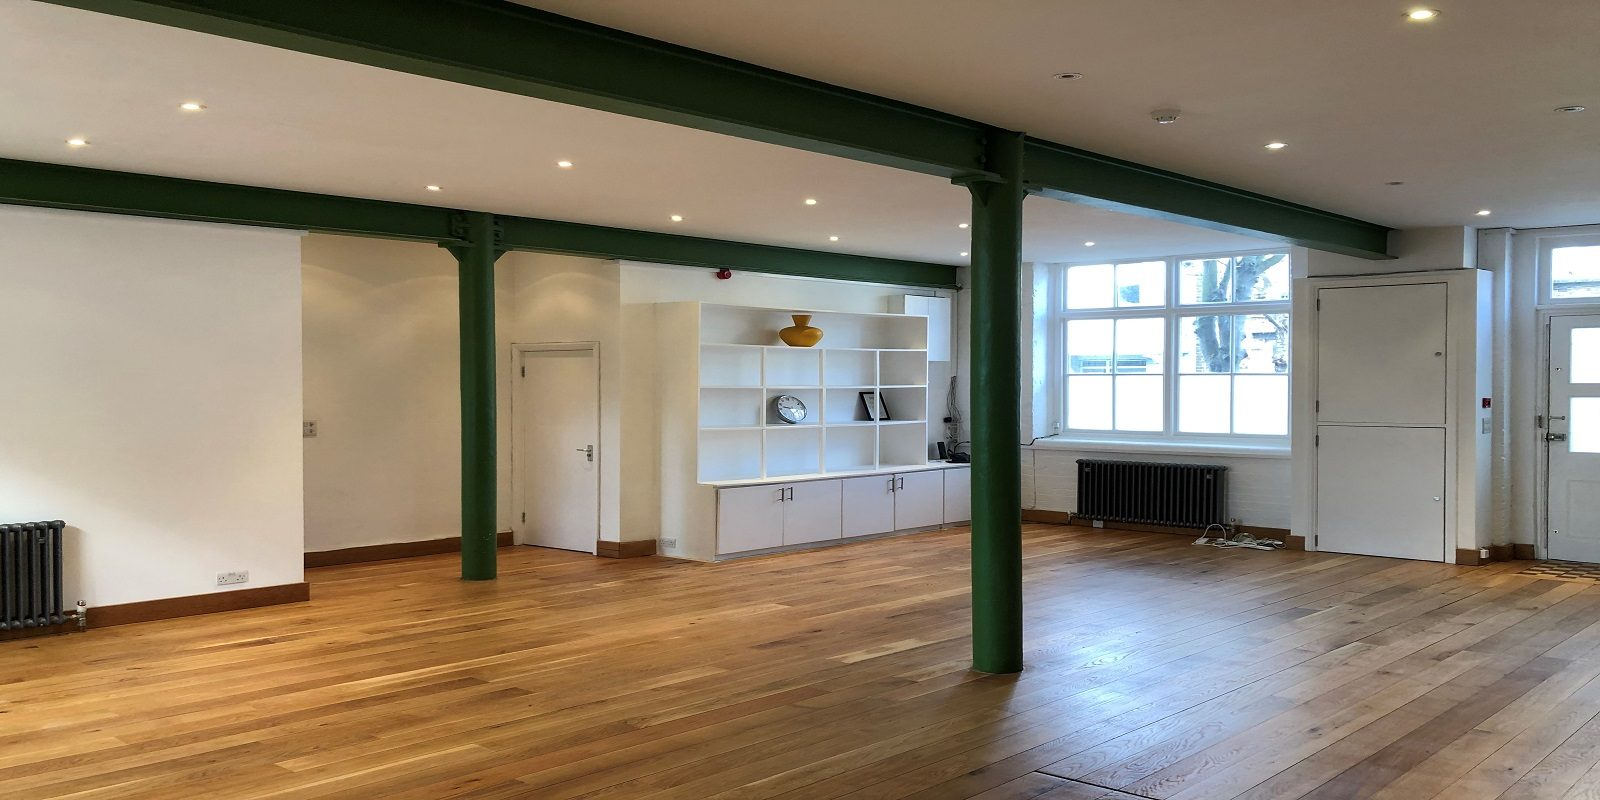 CHARACTER STUDIO/OFFICE – TO BE LET